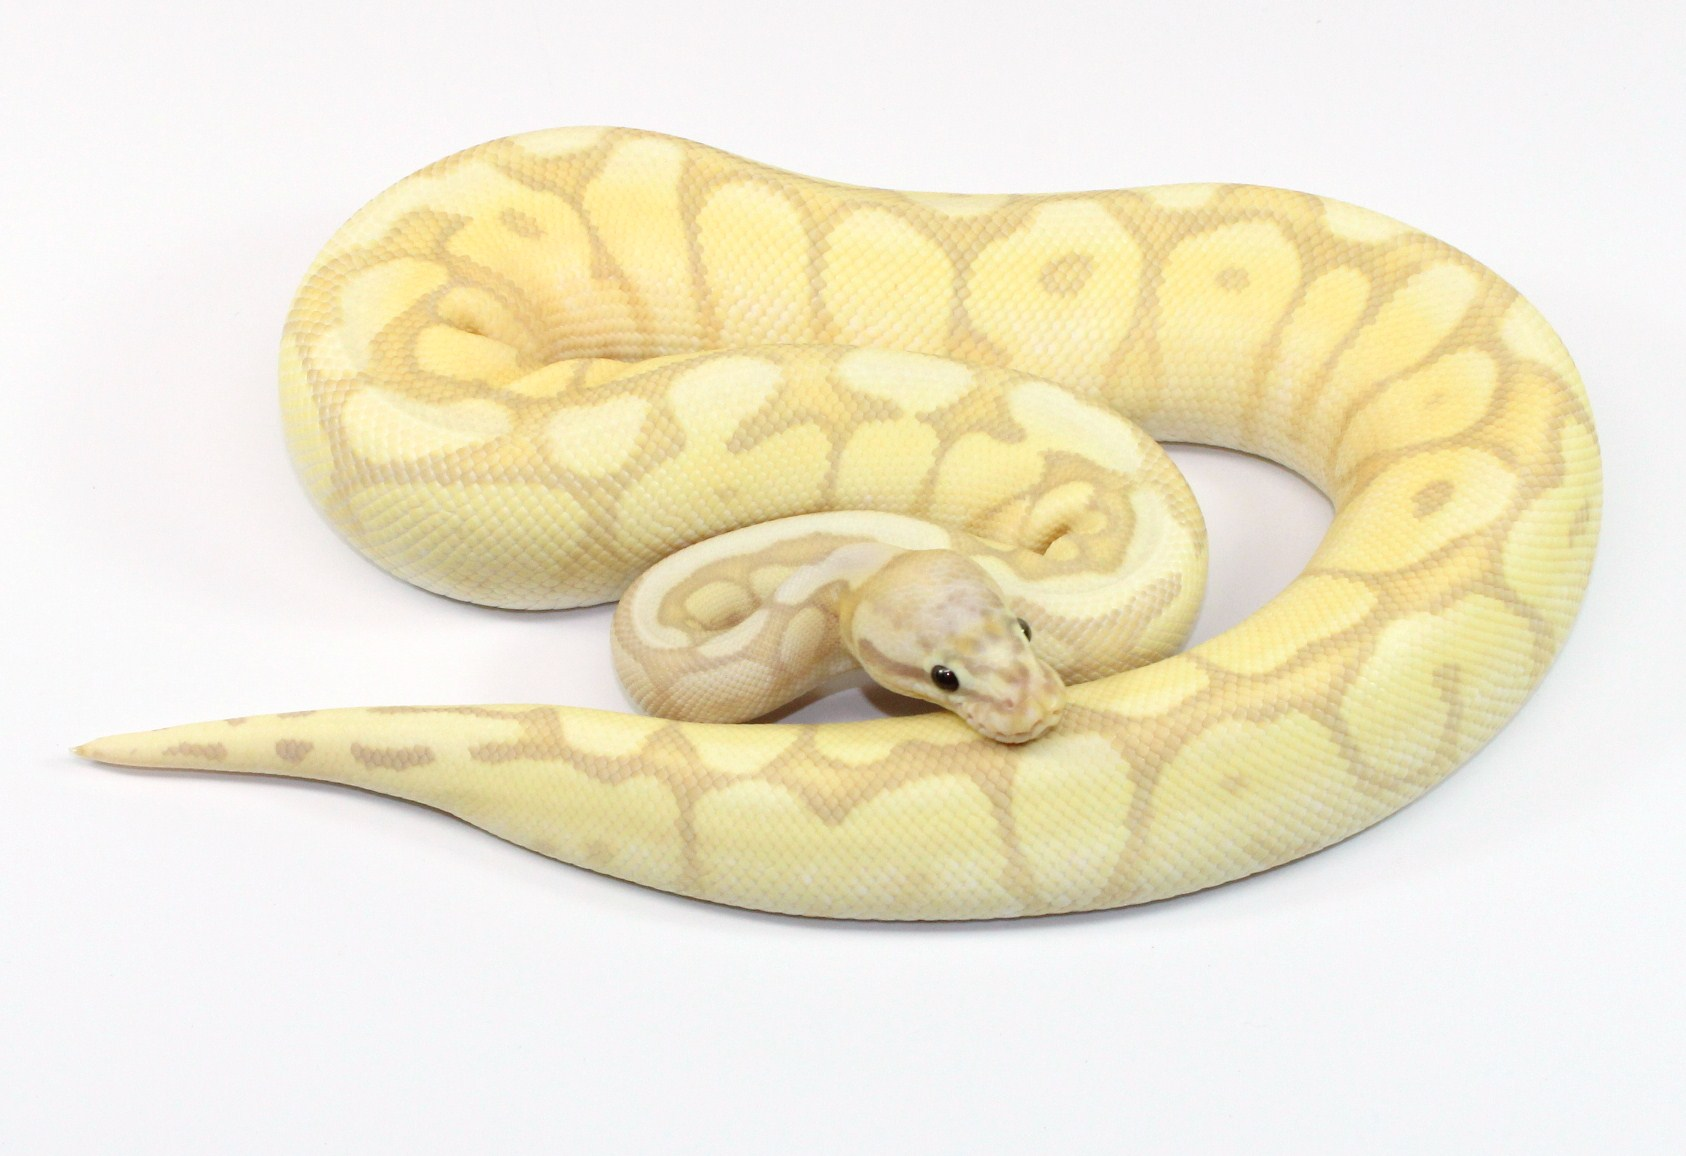 Banana spider ball python - photo#5